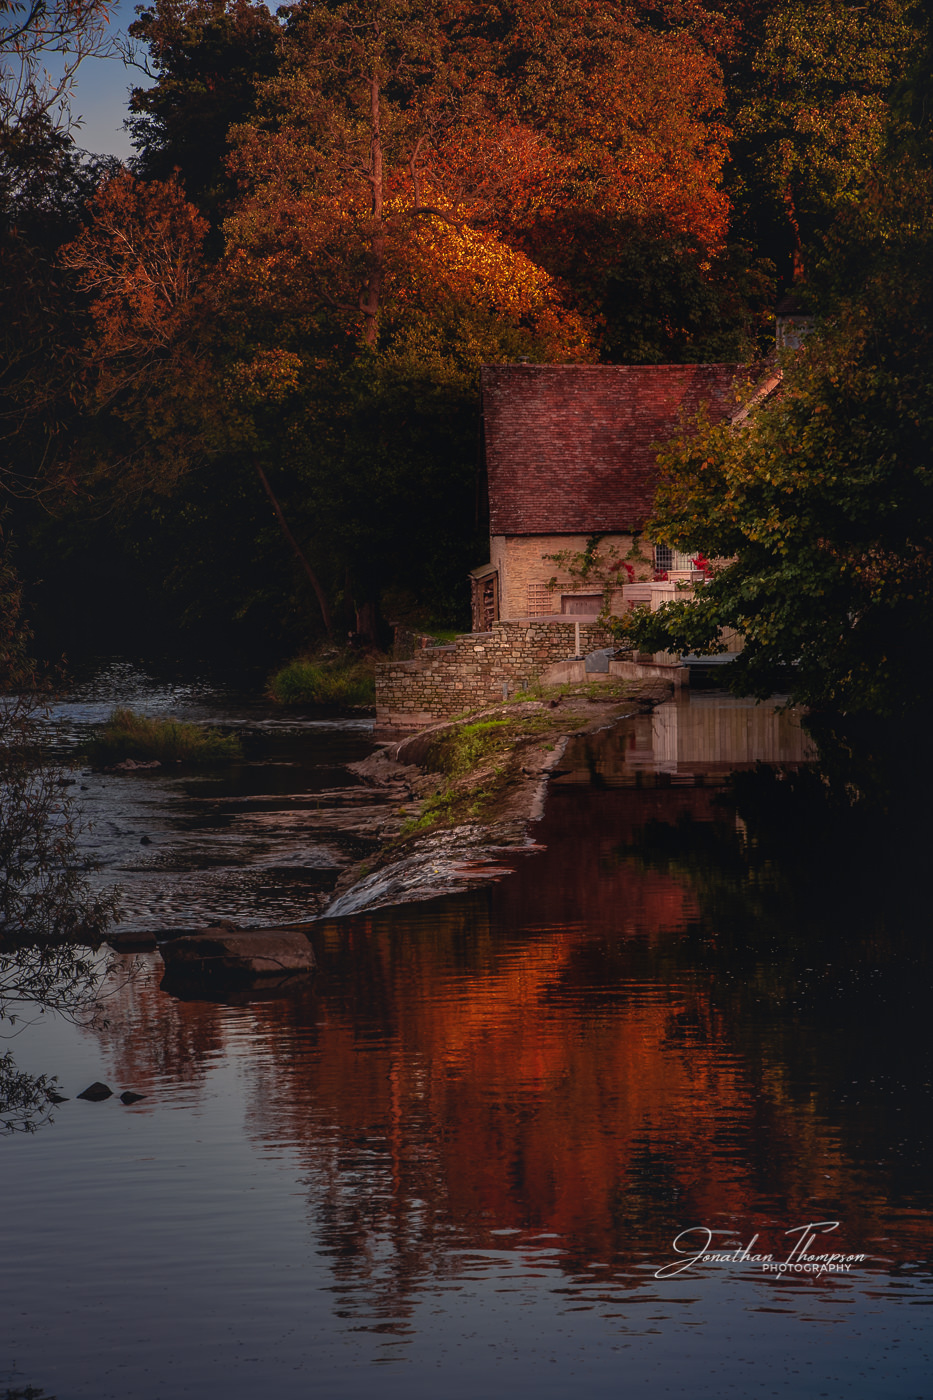 An Autumal Fall river scene with a stone cottage surrounded by orange and red leafed trees on the edge of a river. The colors are reflected in the water. Travel Photography